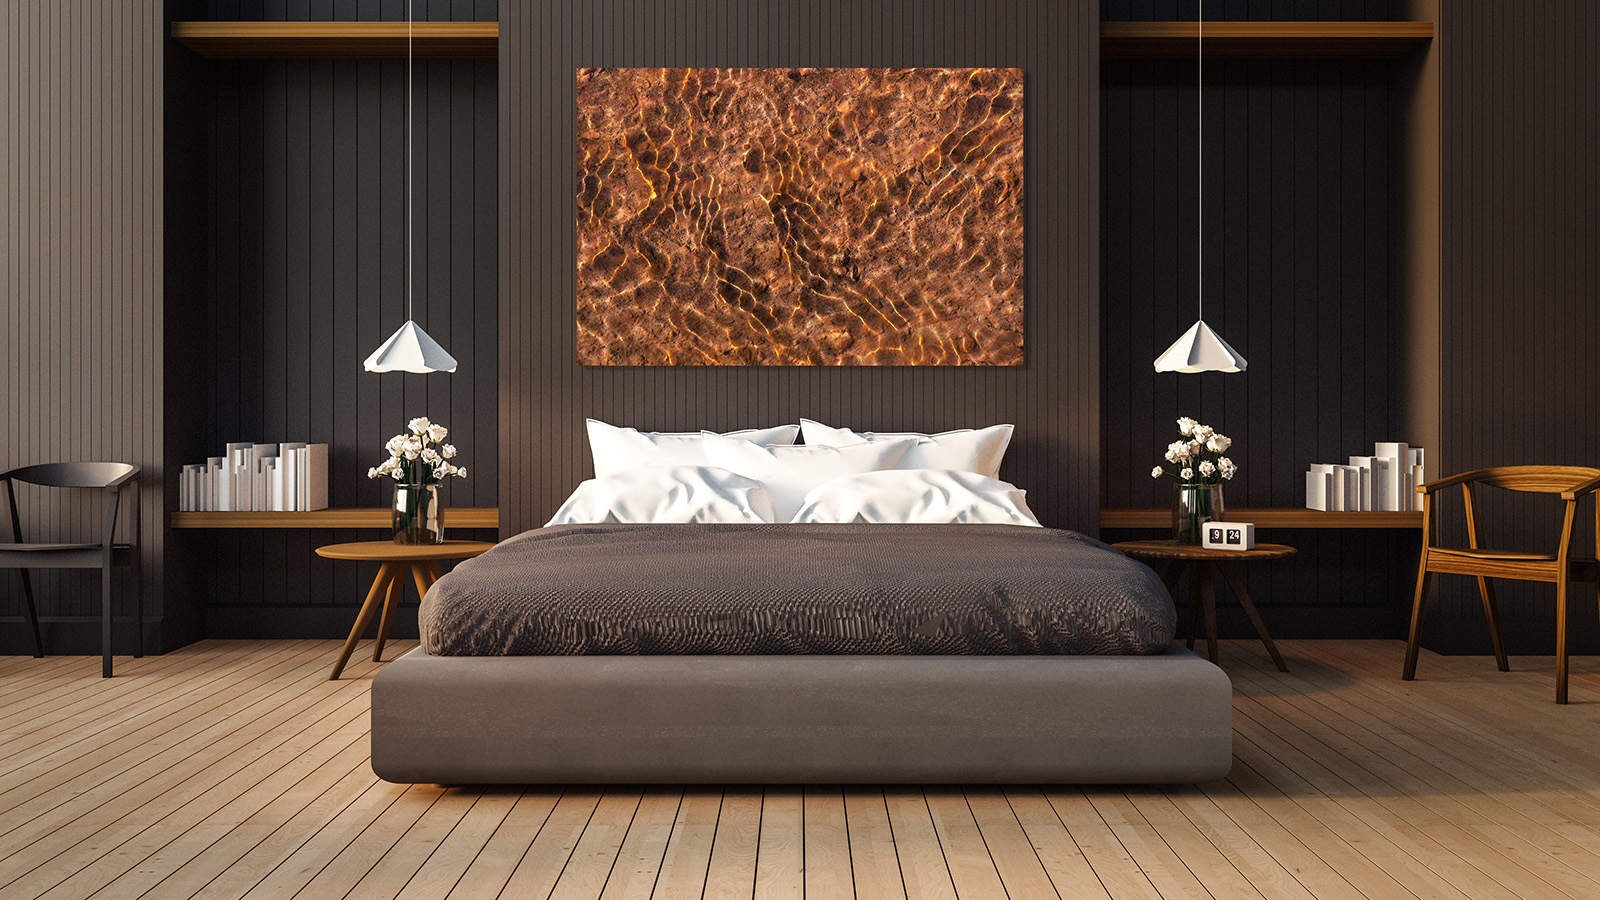 bedroom, interior, hotel, bed, room, furniture, modern, luxury, home, design, decor, contemporary, wood, style, white, apartment...